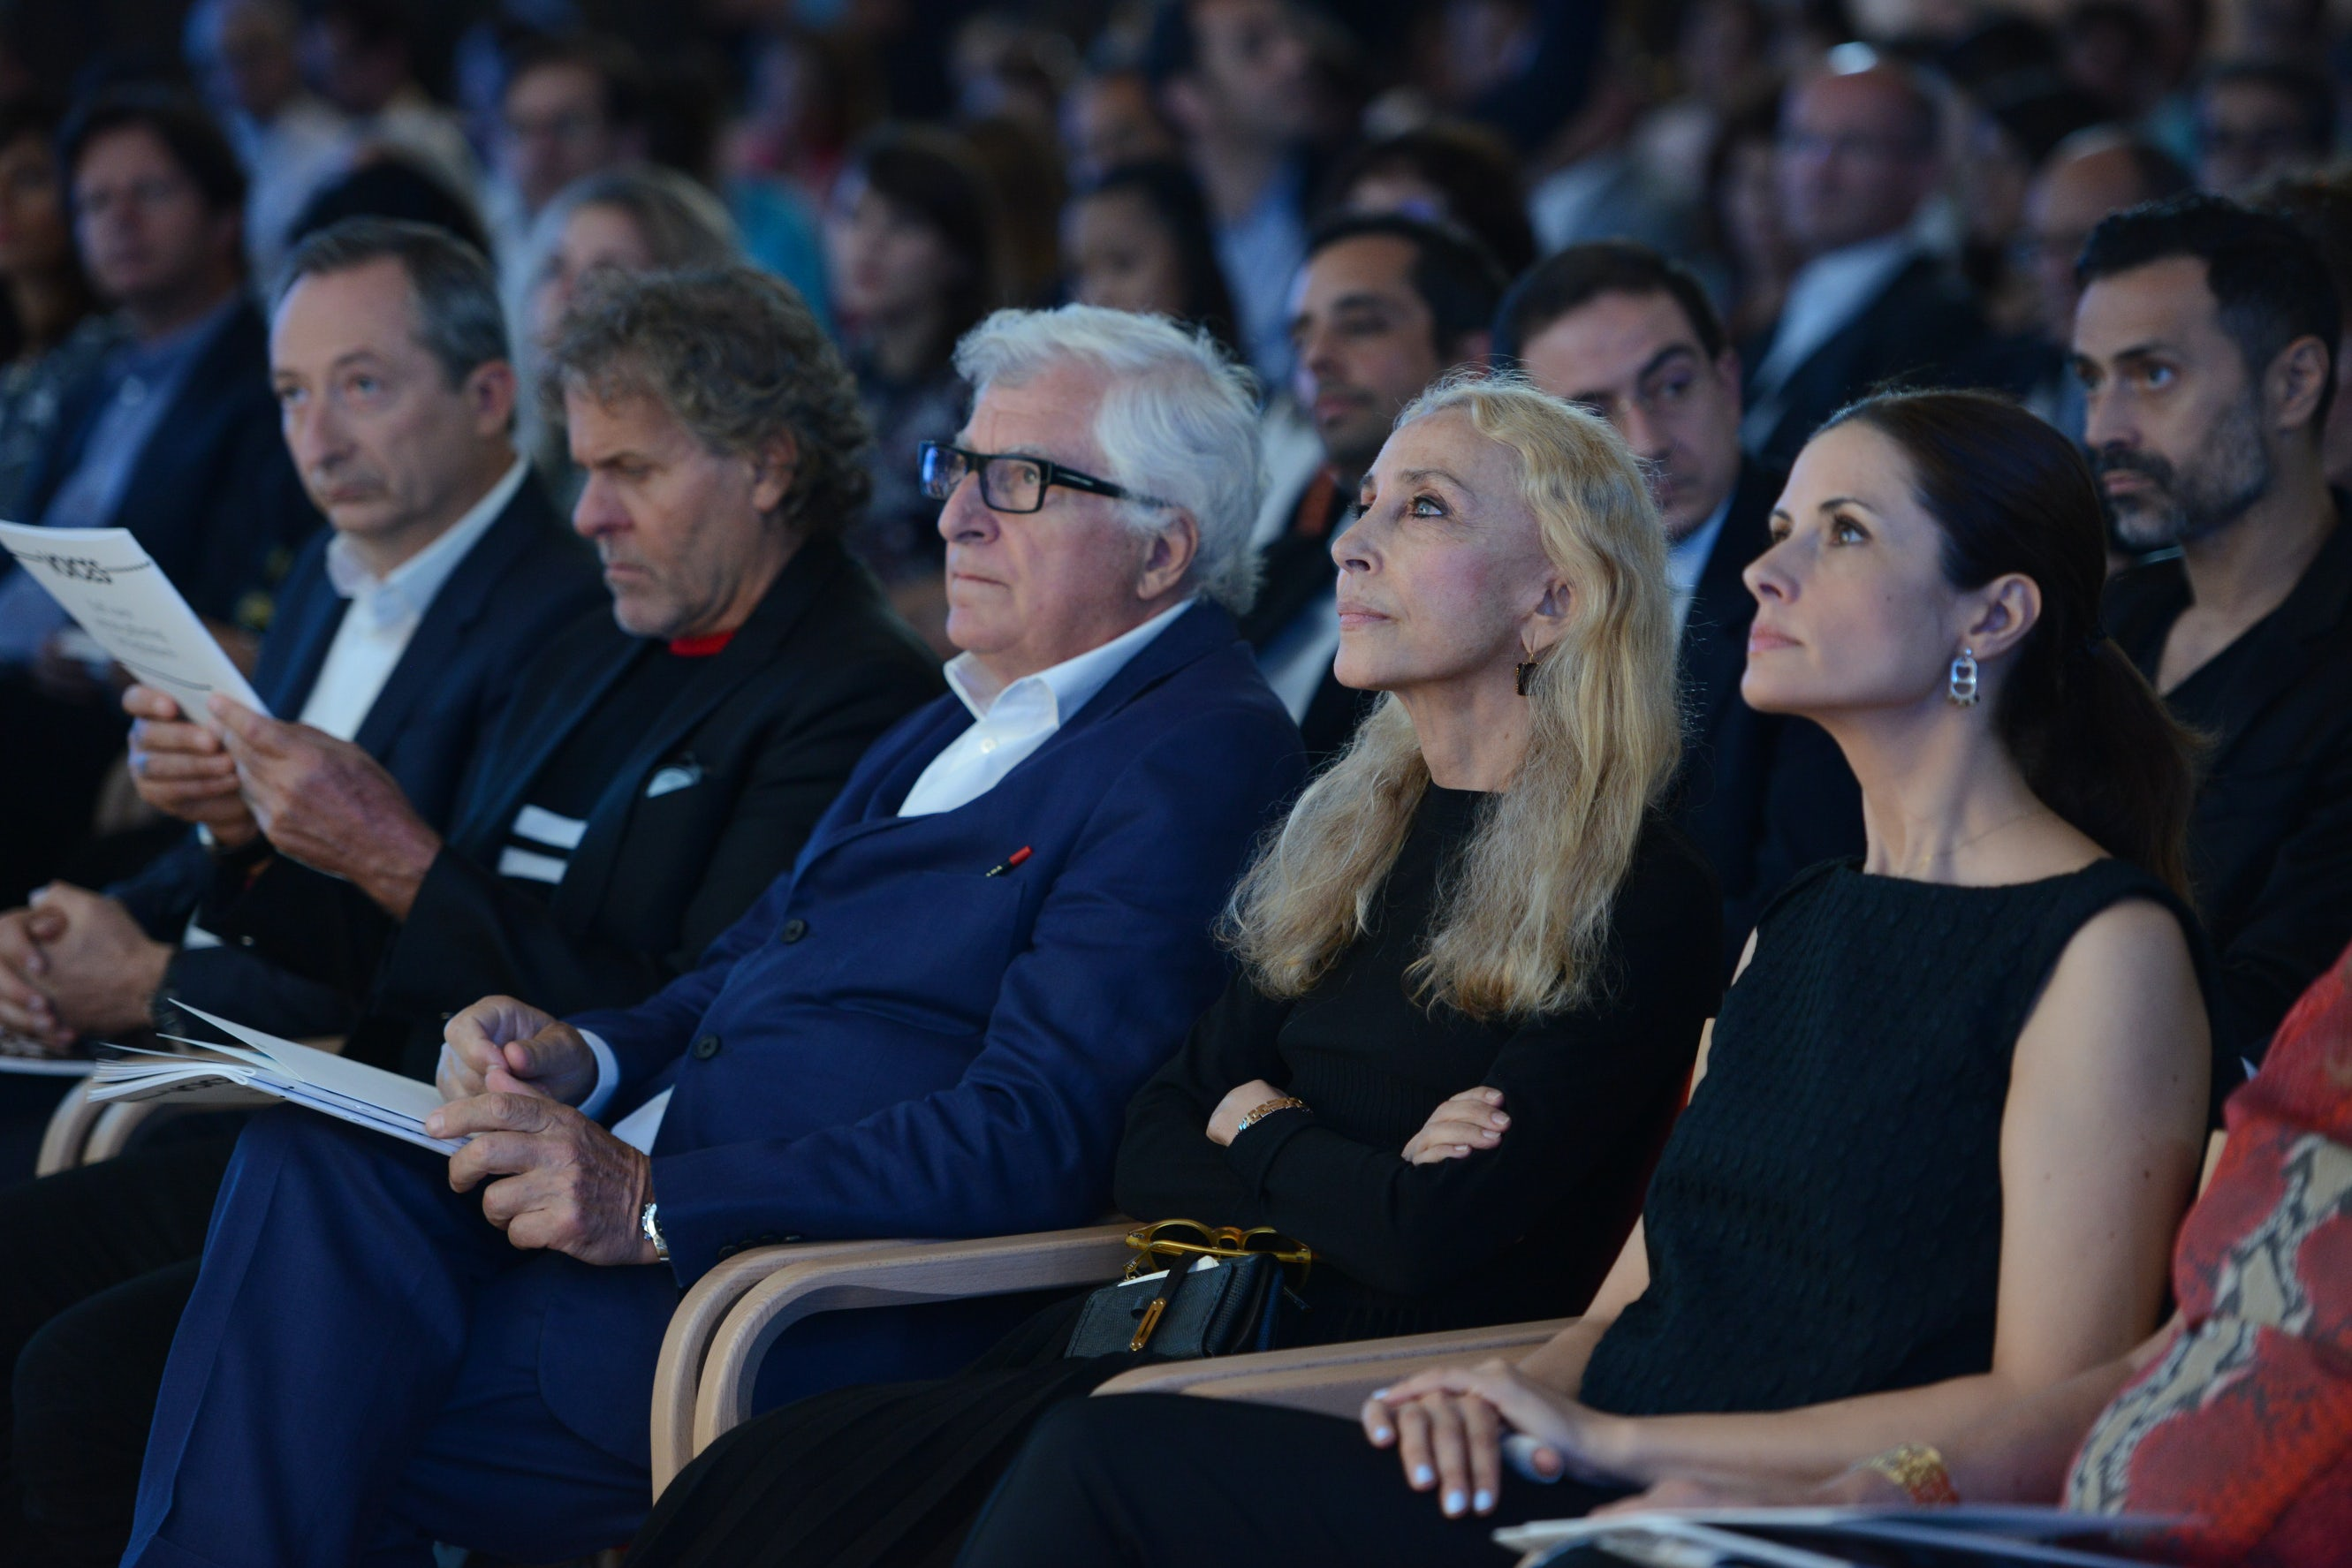 Italian Industry Debates Luxury Equation in Crisis